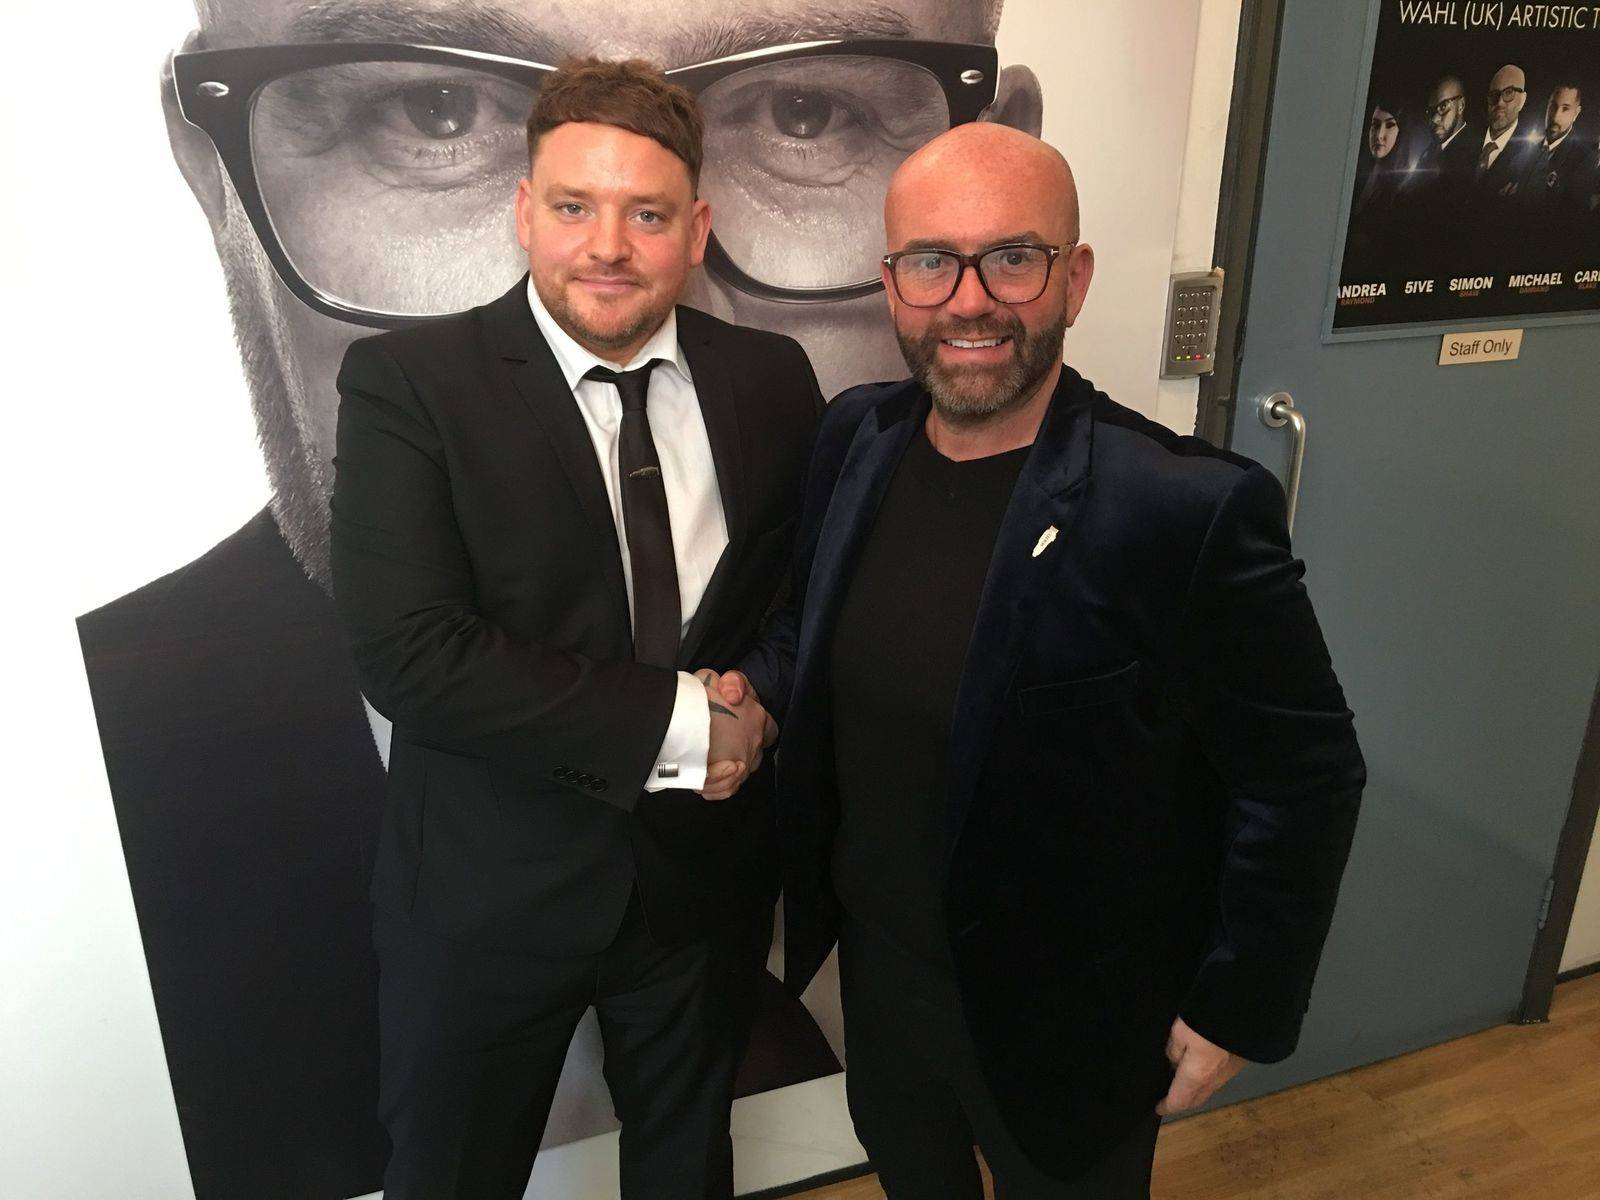 Davie signs with Wahl Ambassador